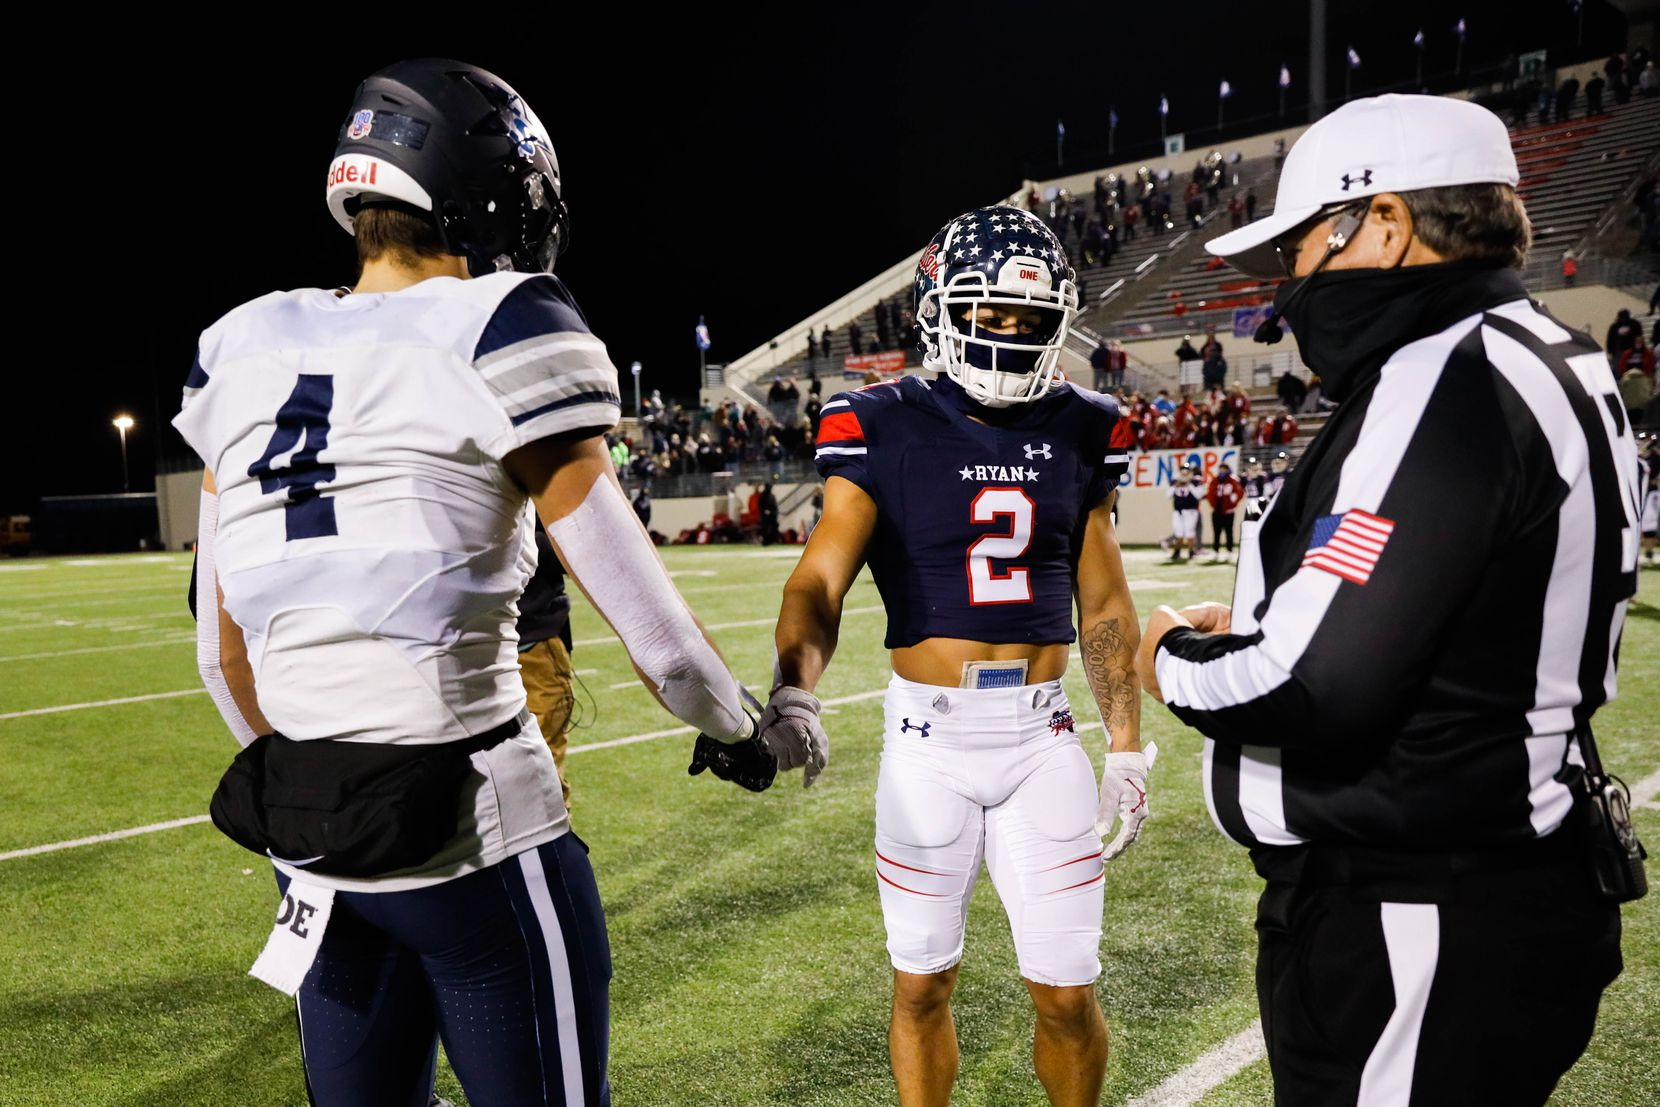 Frisco Lone Star's Trace Bruckler (4) and Denton Ryan's Billy Bowman (2) shake hands during the coin toss at the start of a football game at the C.H. Collins Complex in Denton on Thursday, Dec. 4, 2020. The game is tied at halftime, 14-14. (Juan Figueroa/ The Dallas Morning News)